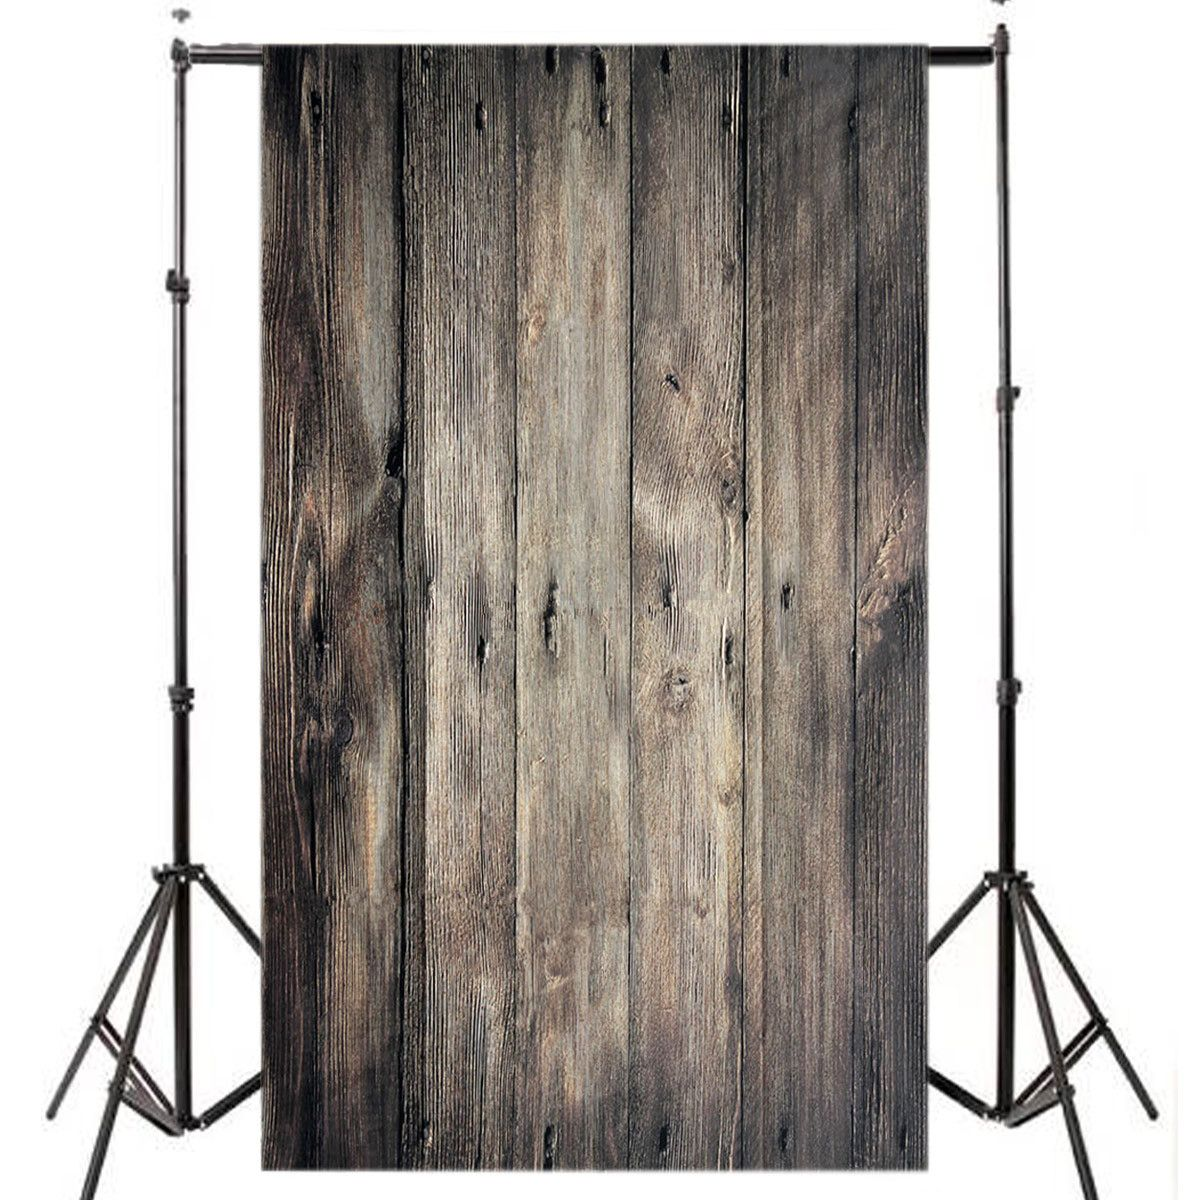 3x5FT Vintage Wooden Plank Wall Floor Costume Wedding Custom Studio Backdrops Photo Background Vinyl New retro letter paper background baby photo studio props photography backdrops vinyl 5x7ft or 3x5ft wooden floor